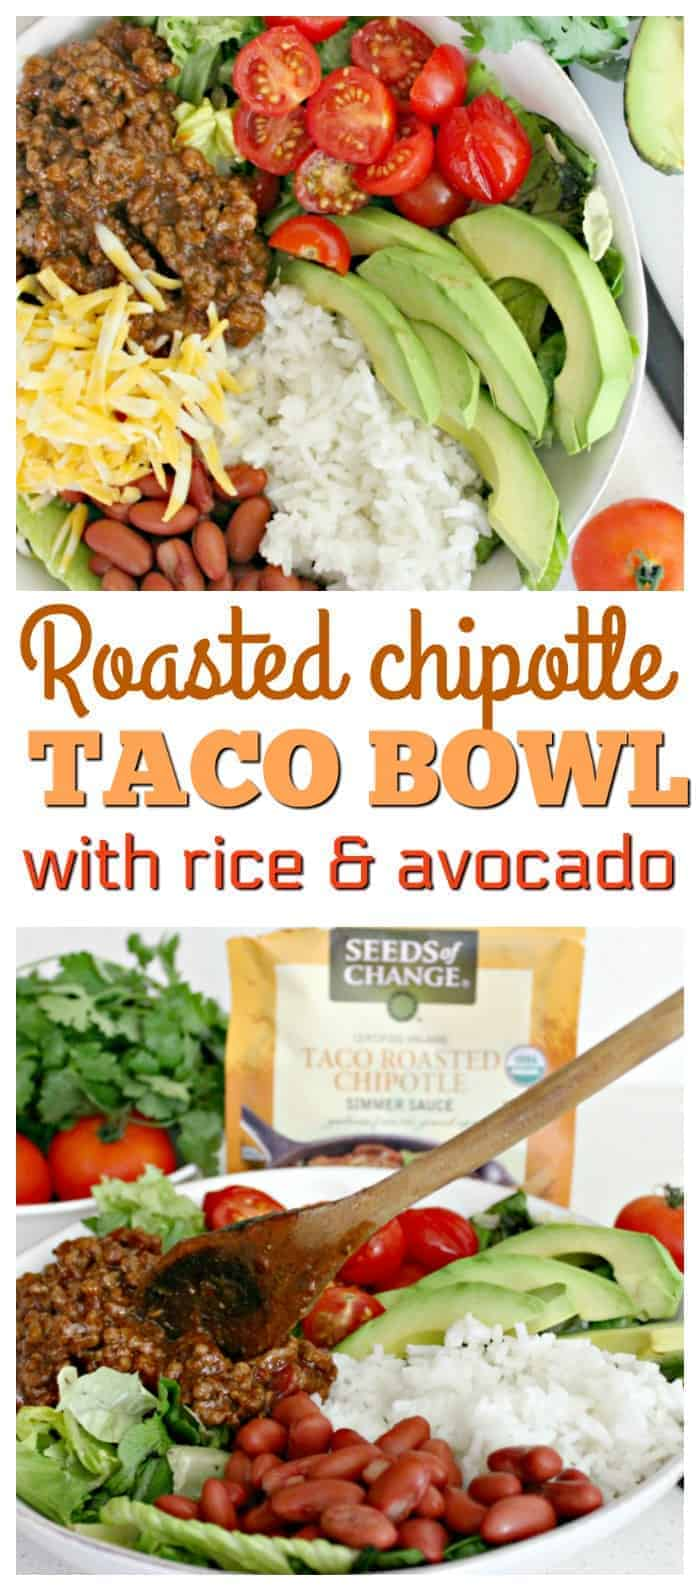 Gluten Free Chipotle Taco Bowl with Rice Recipe